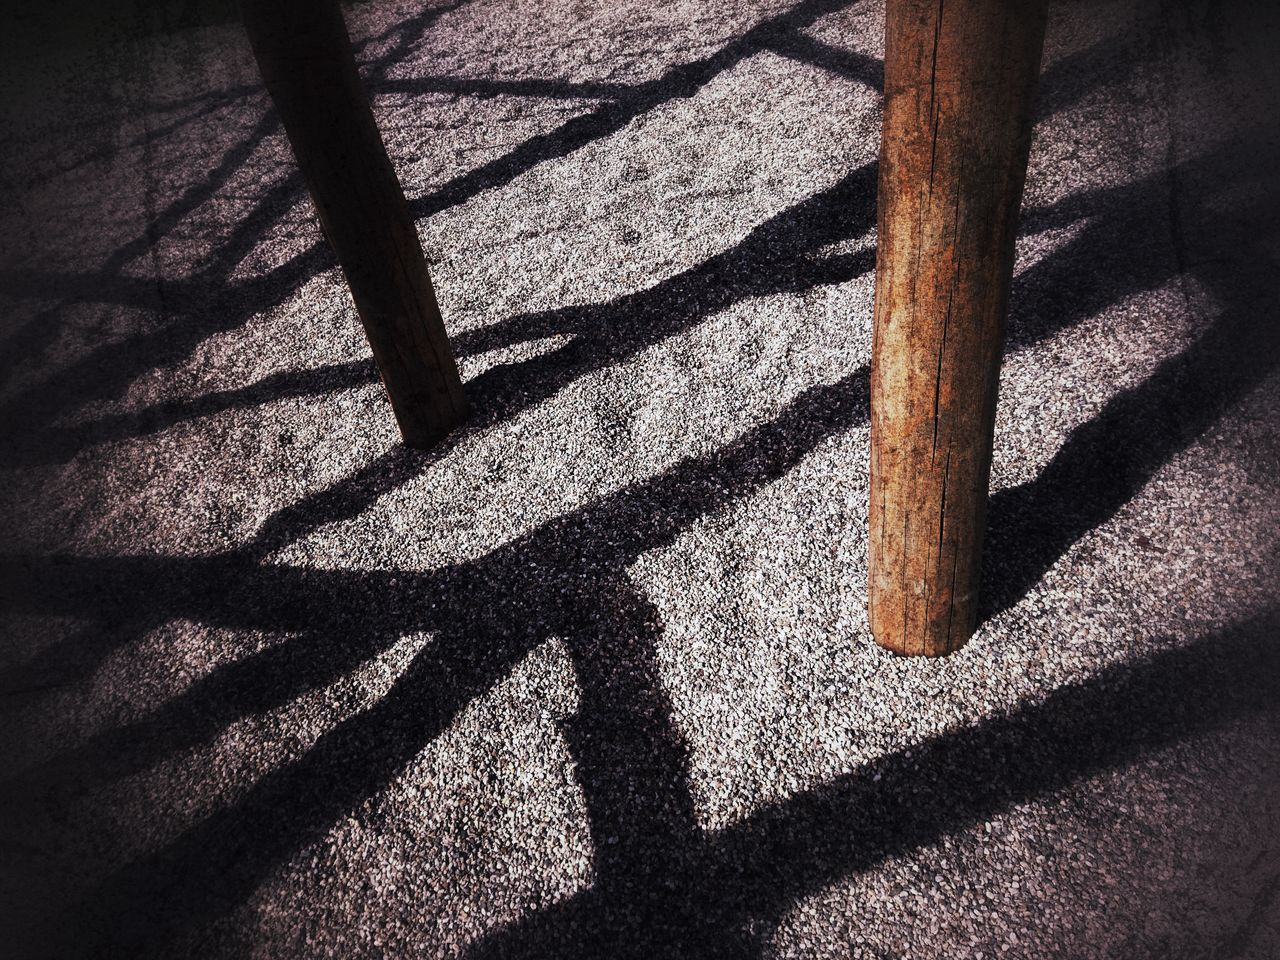 Shadow Sunlight Focus On Shadow High Angle View Day No People Low Section Close-up Climbing Climbing Frame Monkey Bars Beams Beam Wood Architecture Playgrounds Playground Equipment Playground Wood - Material Outdoors